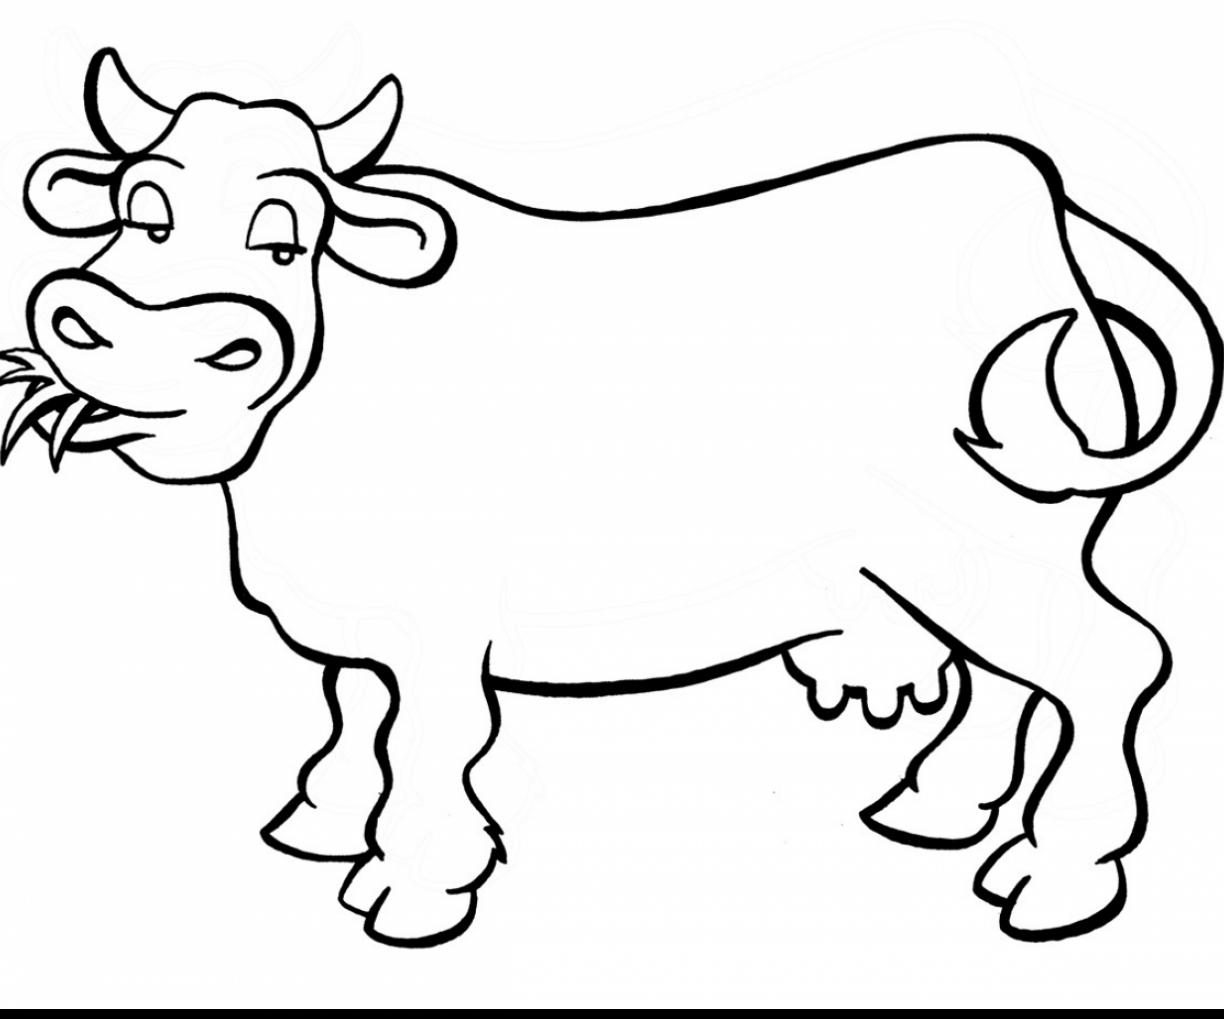 Cow And Calf Coloring Pages - GetColoringPages.com | 1019x1224